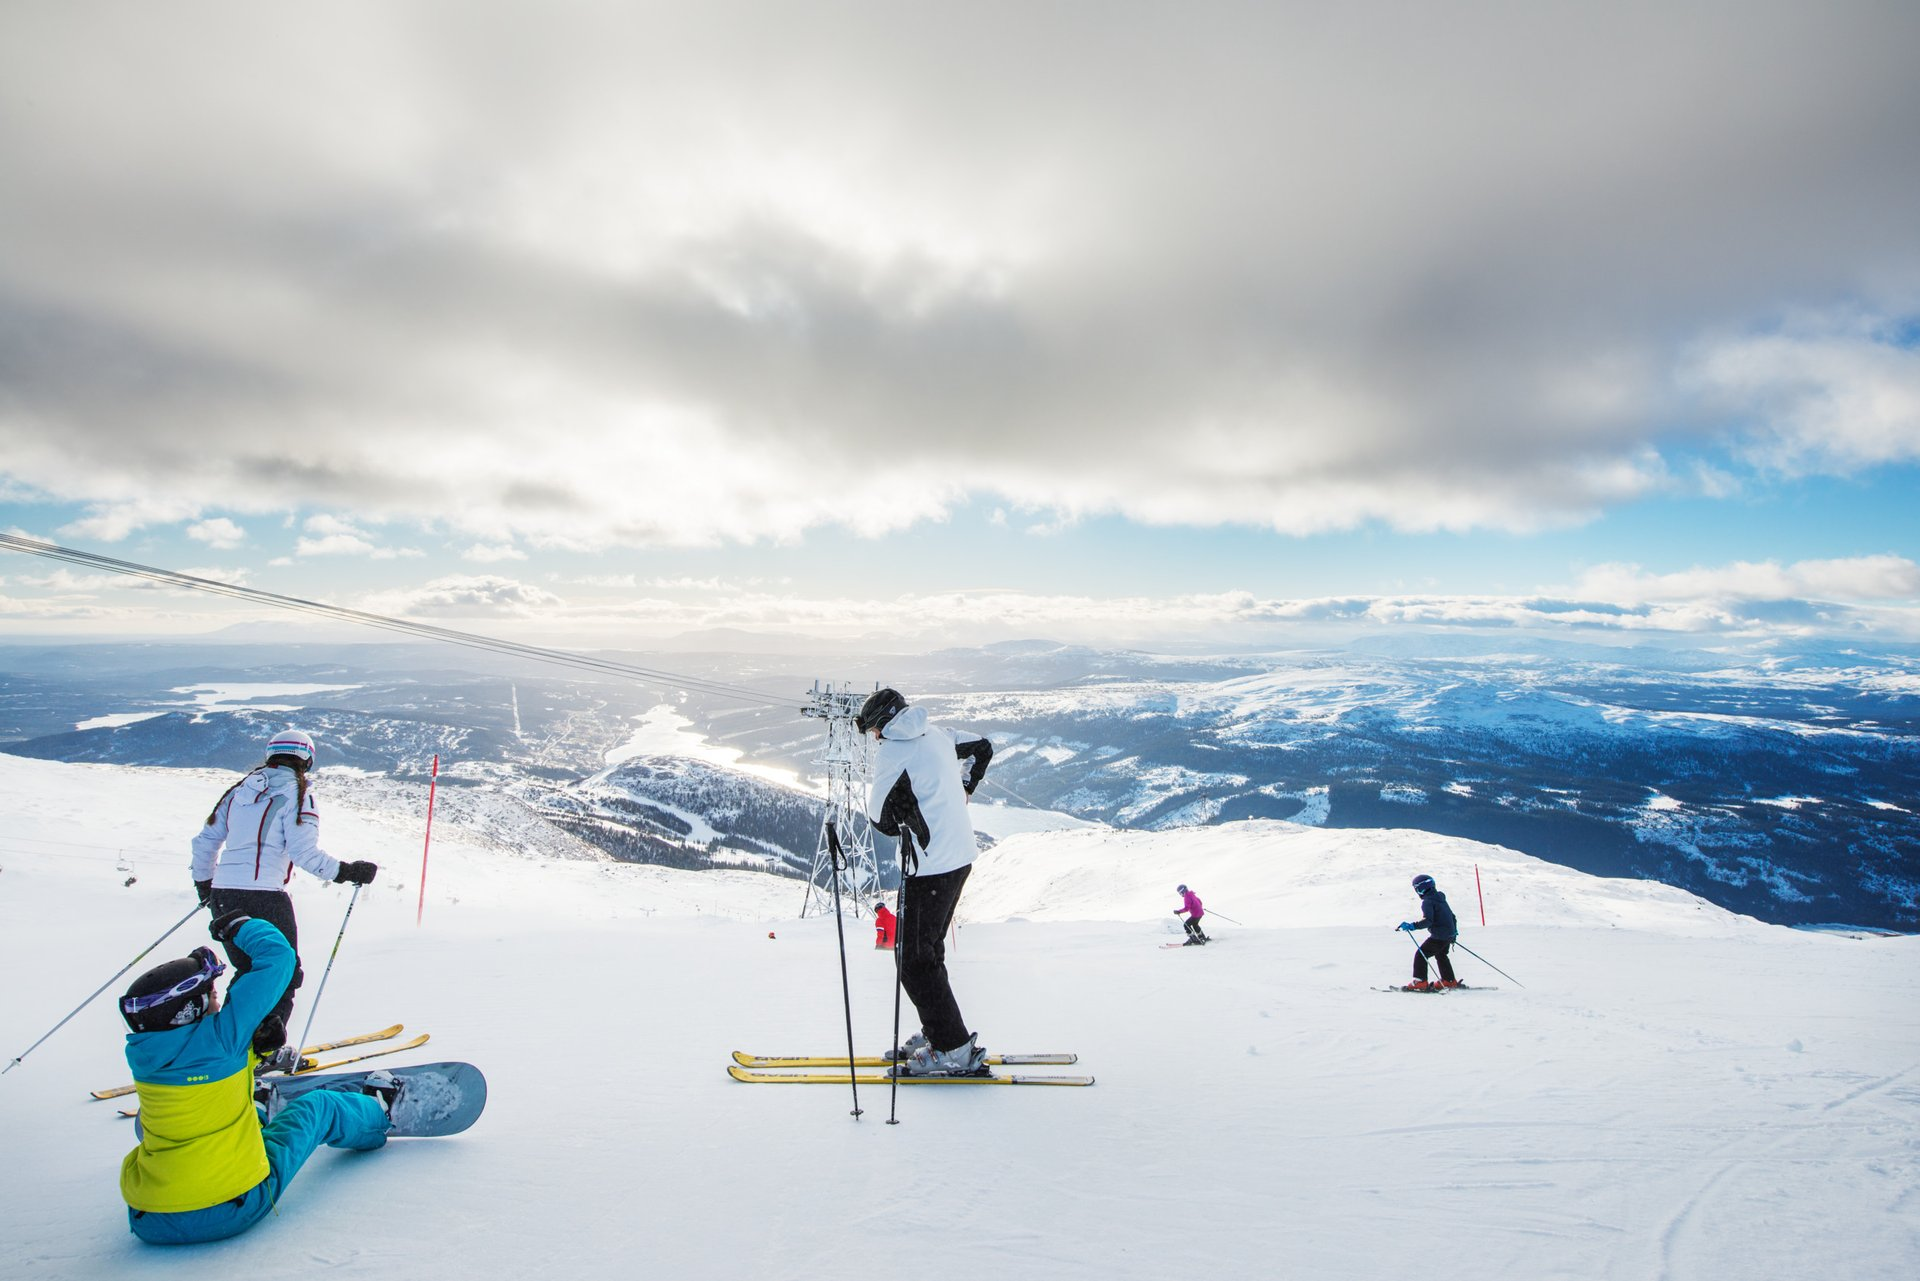 Skiing in Sweden 2020 - Best Time